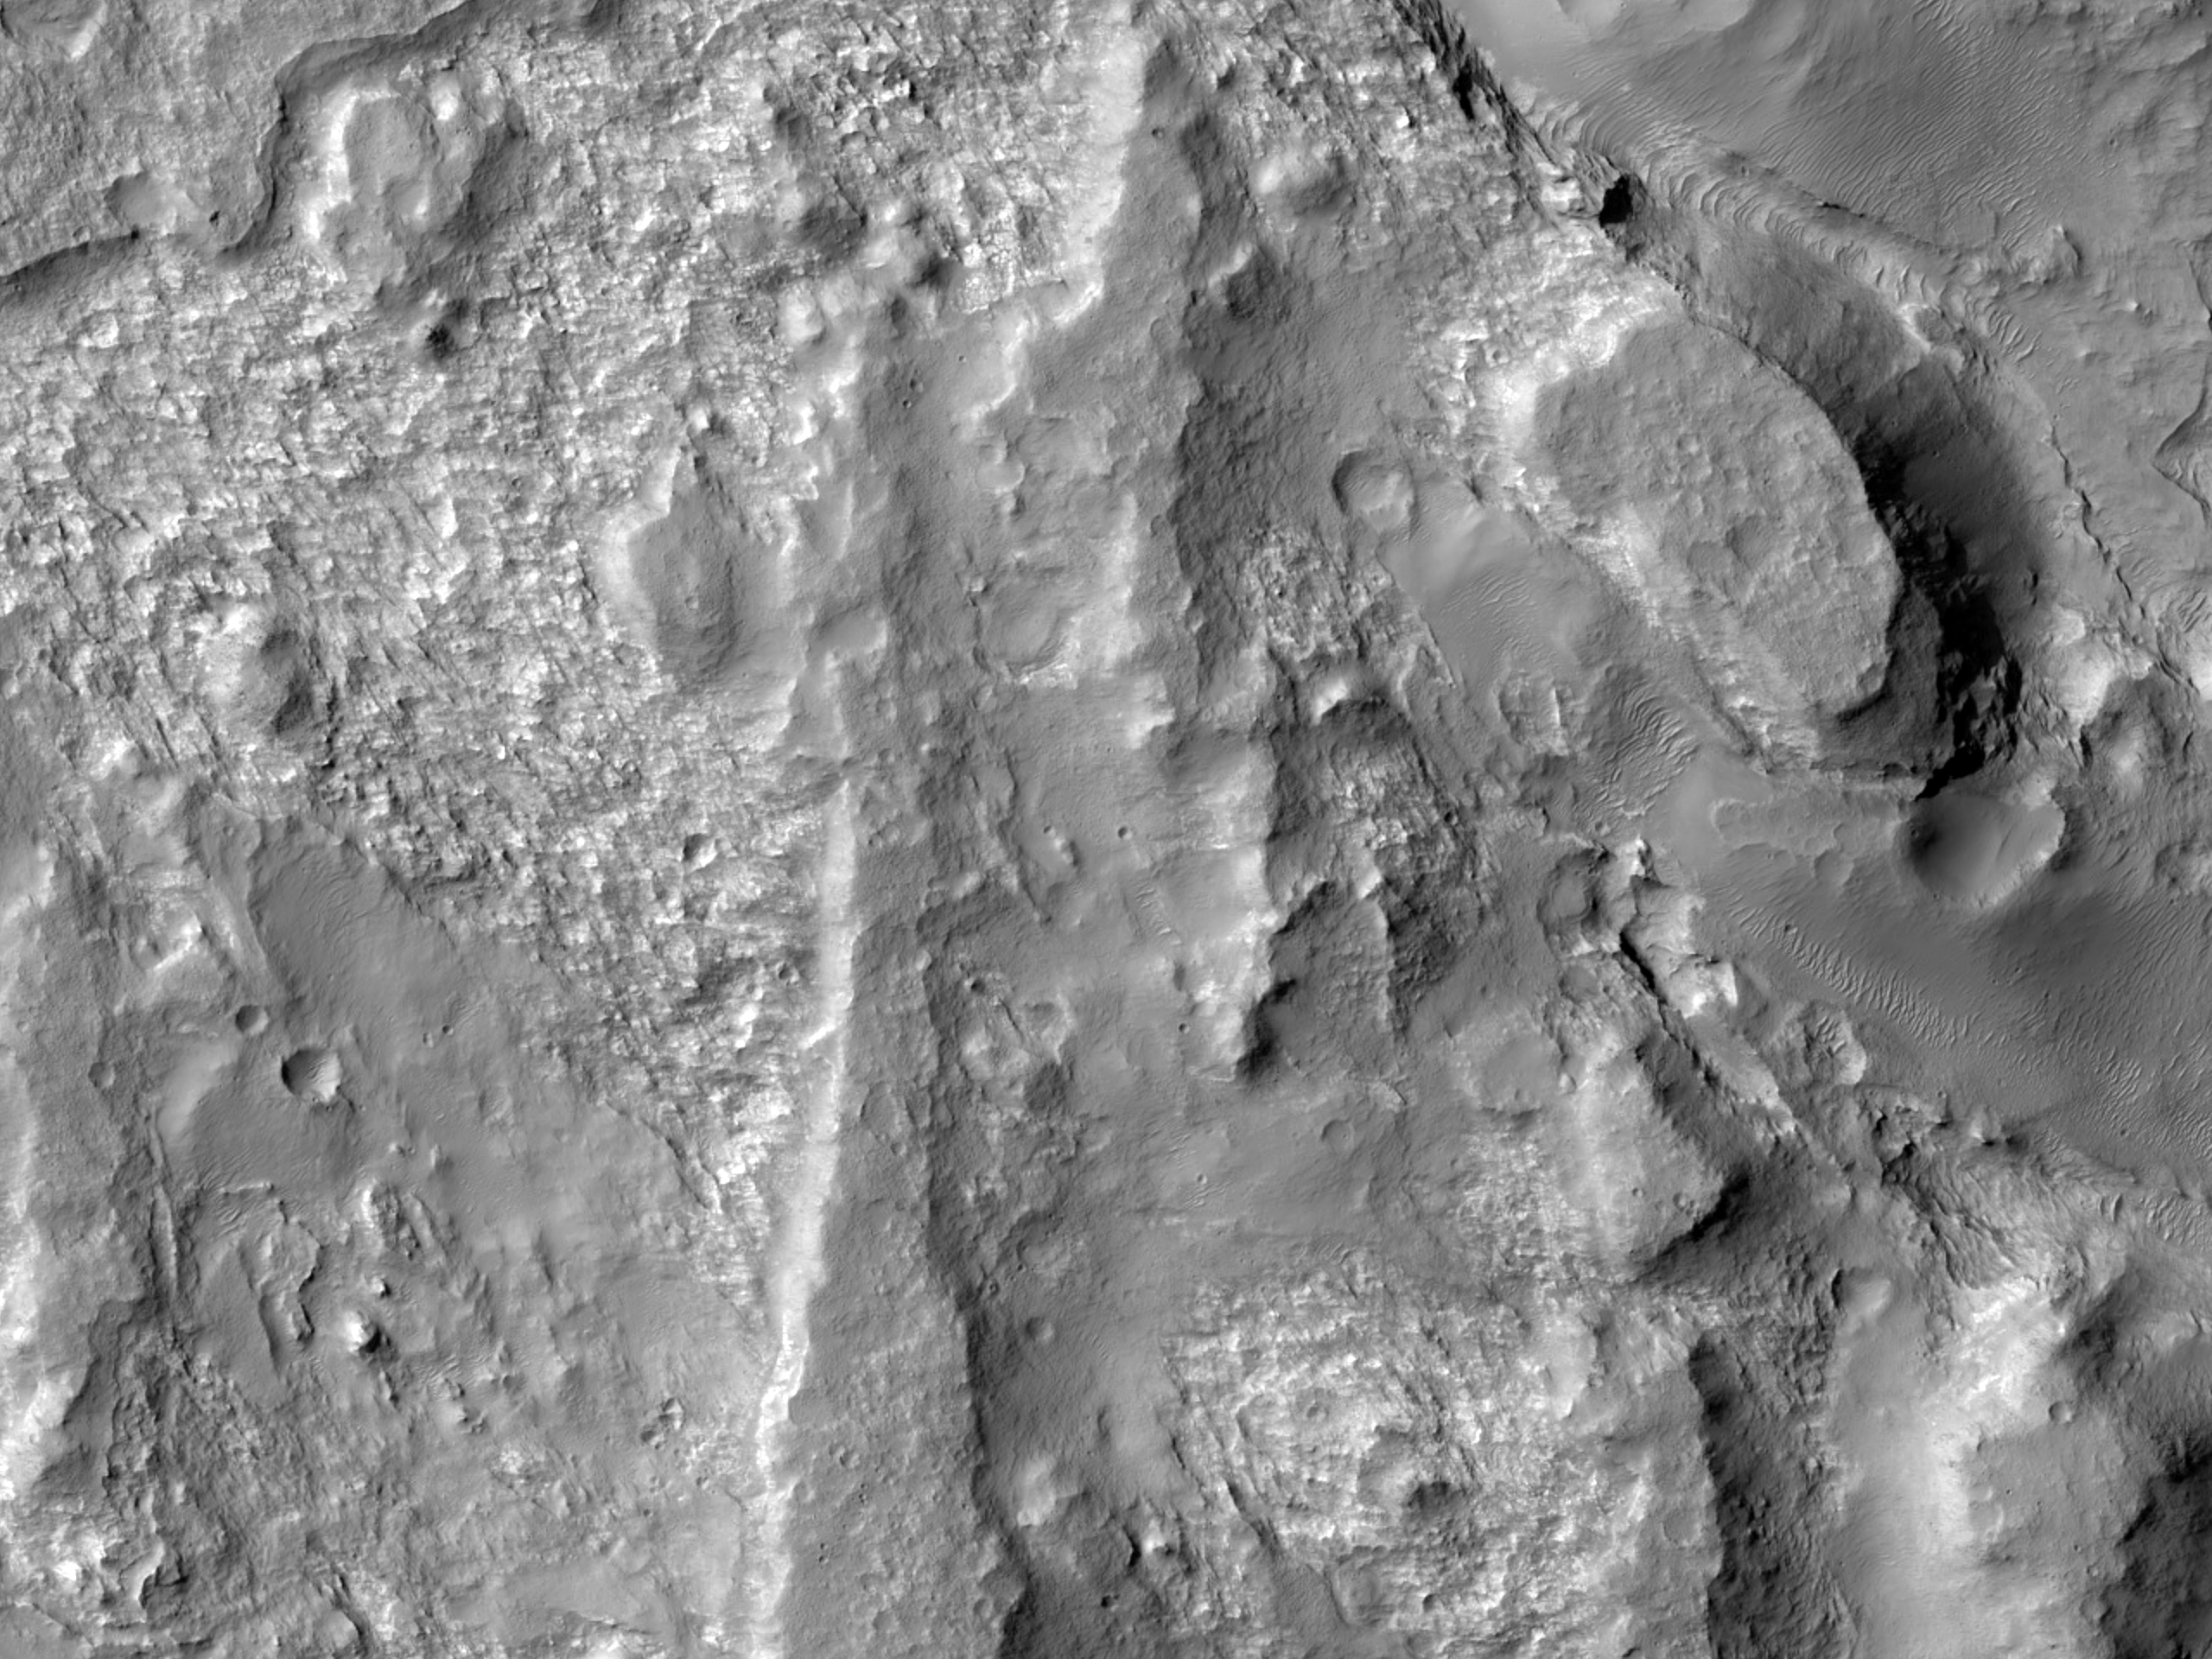 Layered Bedrock to the Northwest of Hellas Planitia